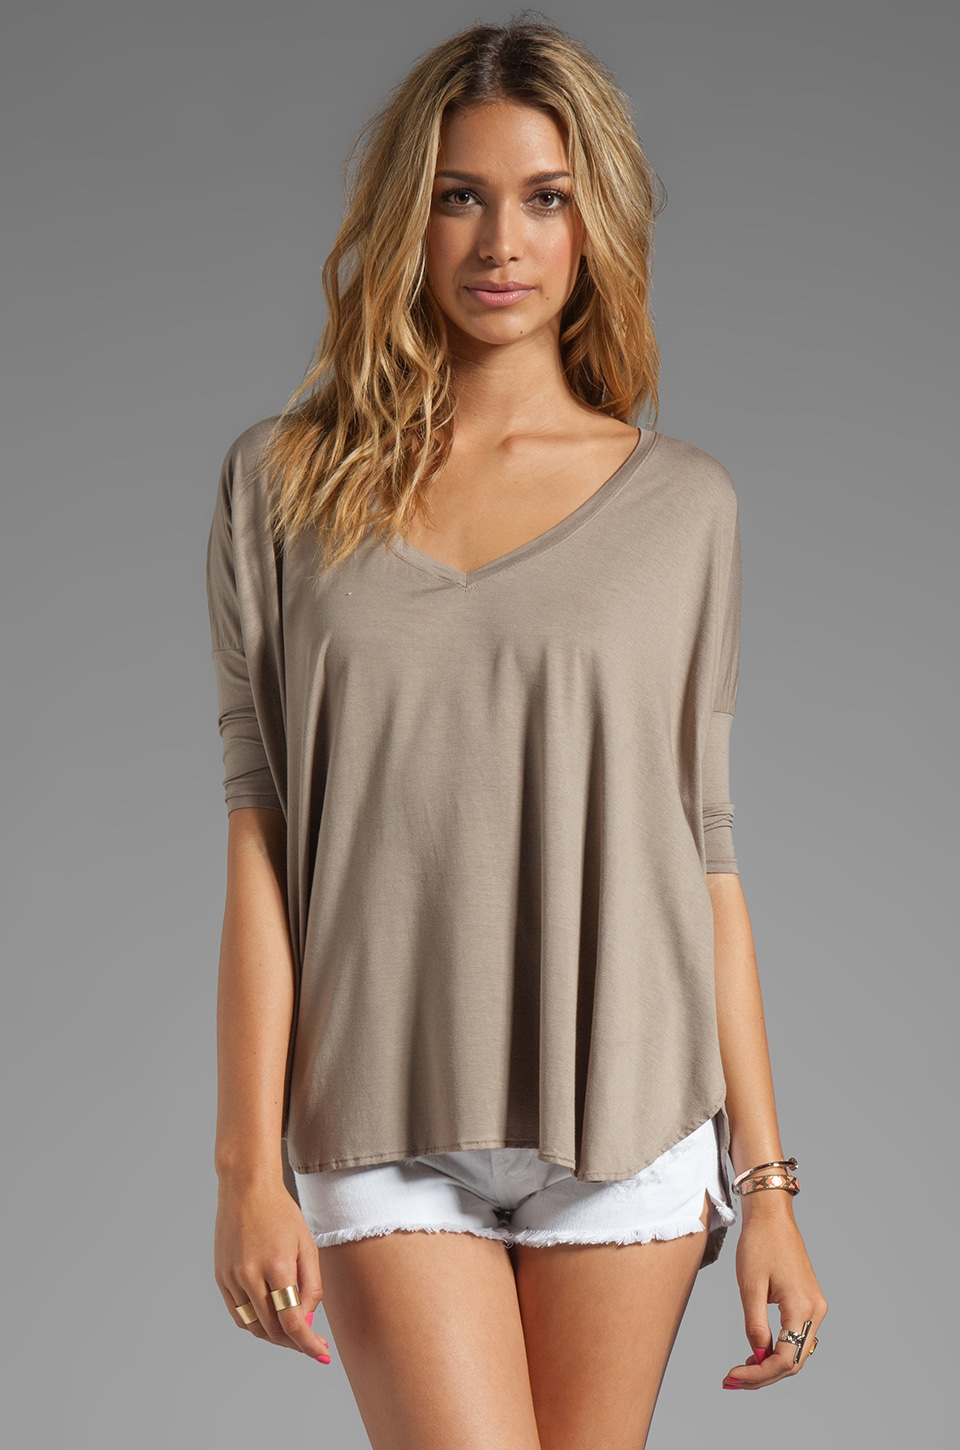 Feel the Piece Sparrow Oversized Tee in Taupe